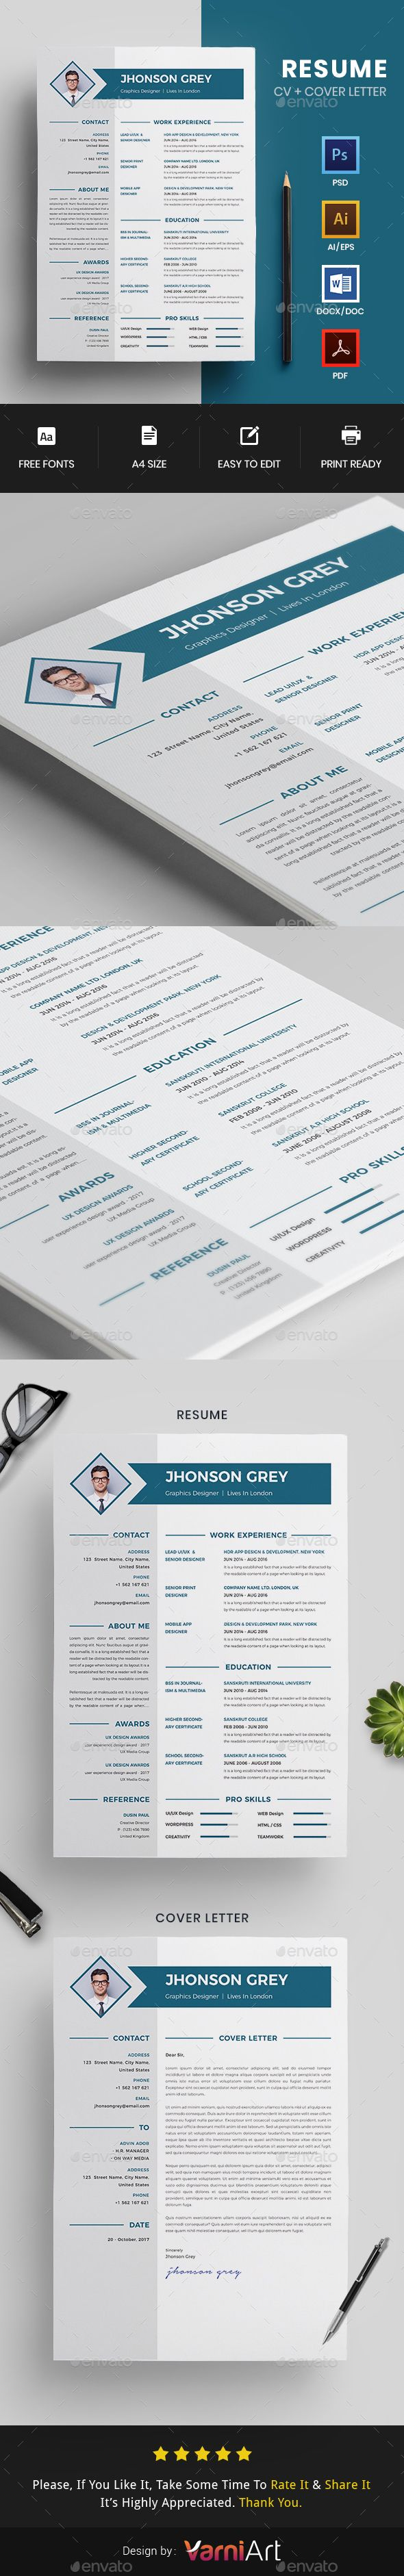 mla cover letter format%0A CV   Resume Template PSD  Vector EPS  AI Illustrator  MS Word